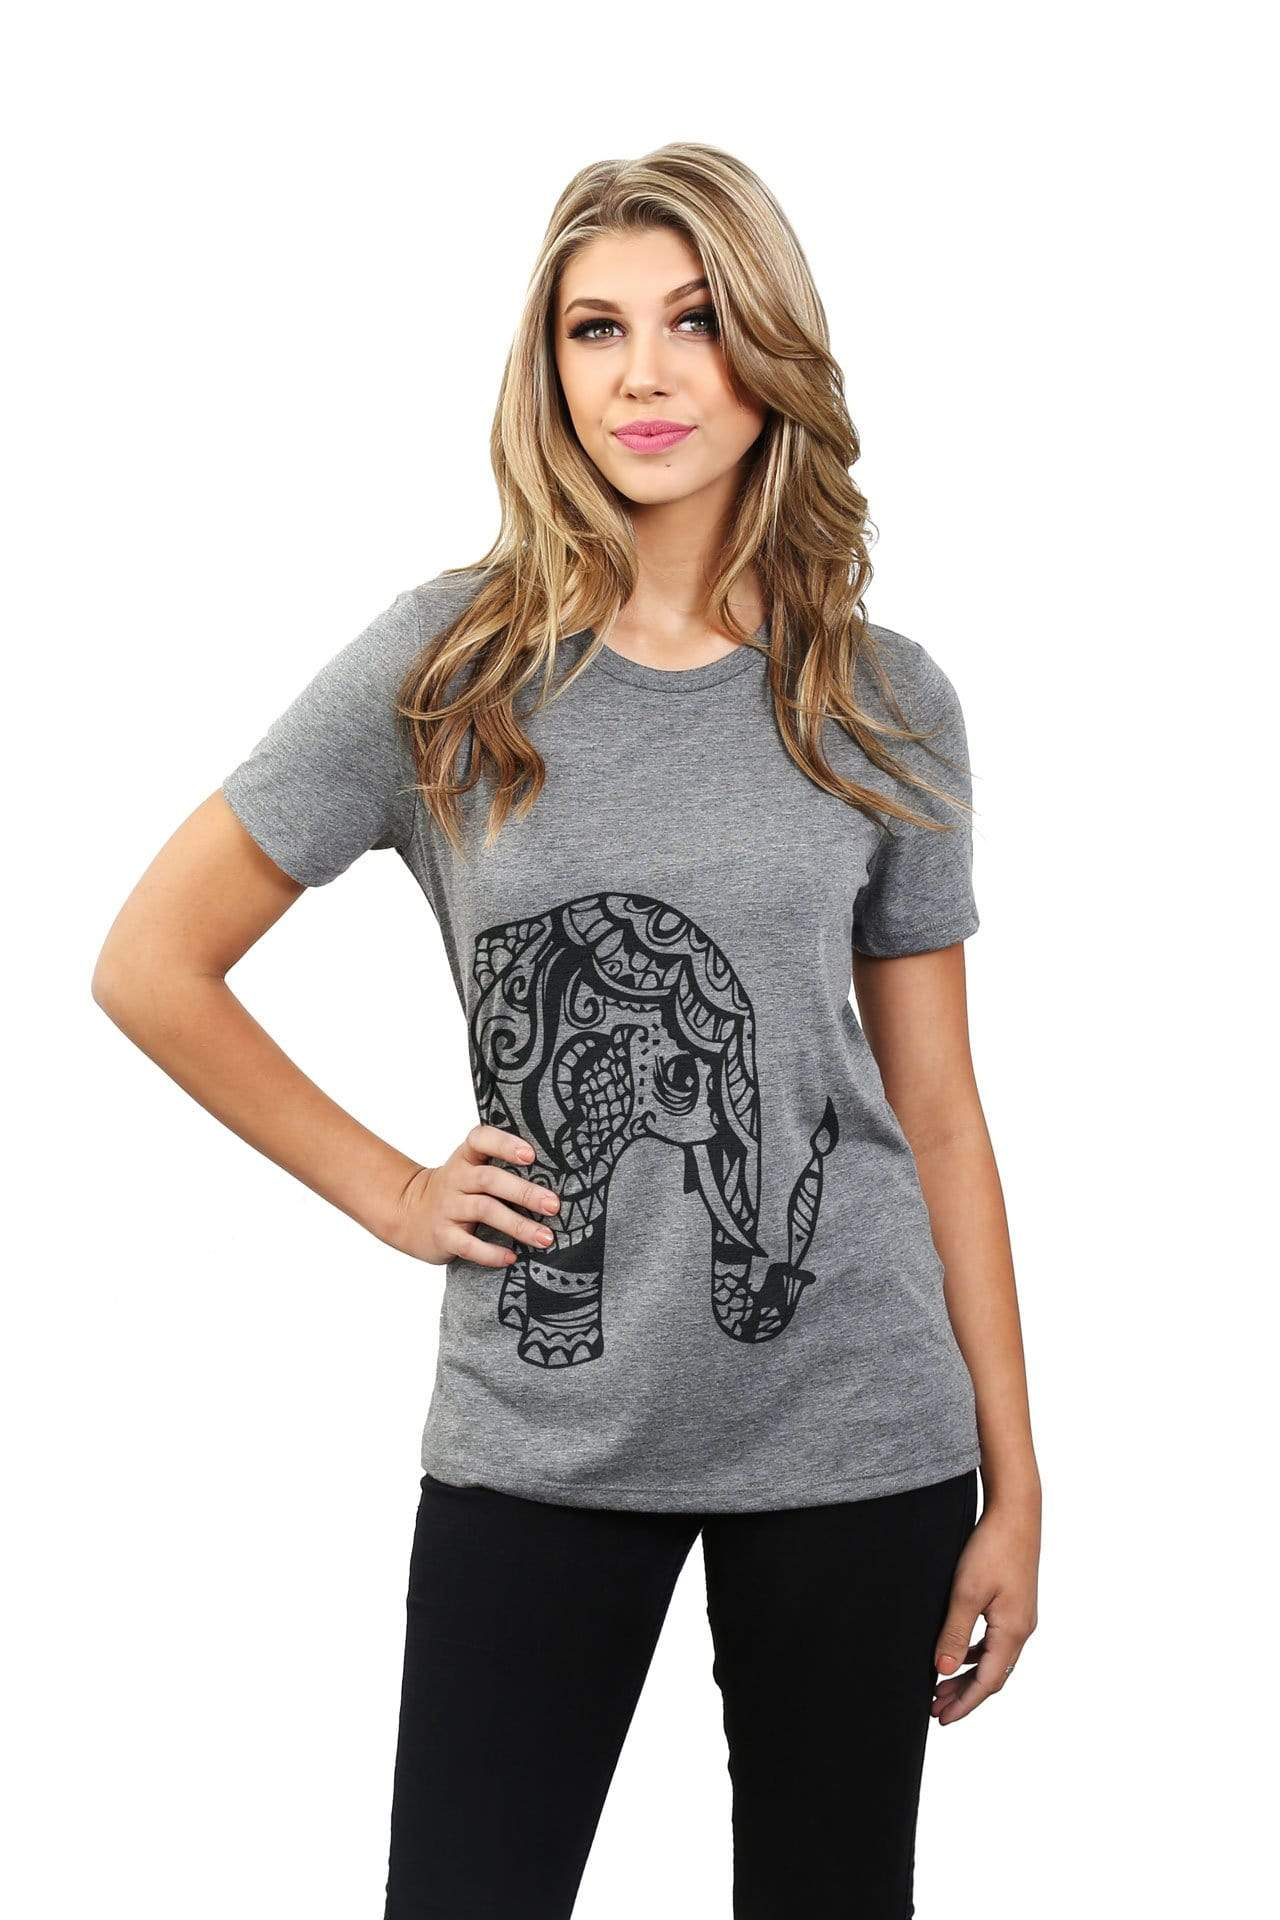 Artisan Elephant - Thread Tank | Stories You Can Wear | T-Shirts, Tank Tops and Sweatshirts